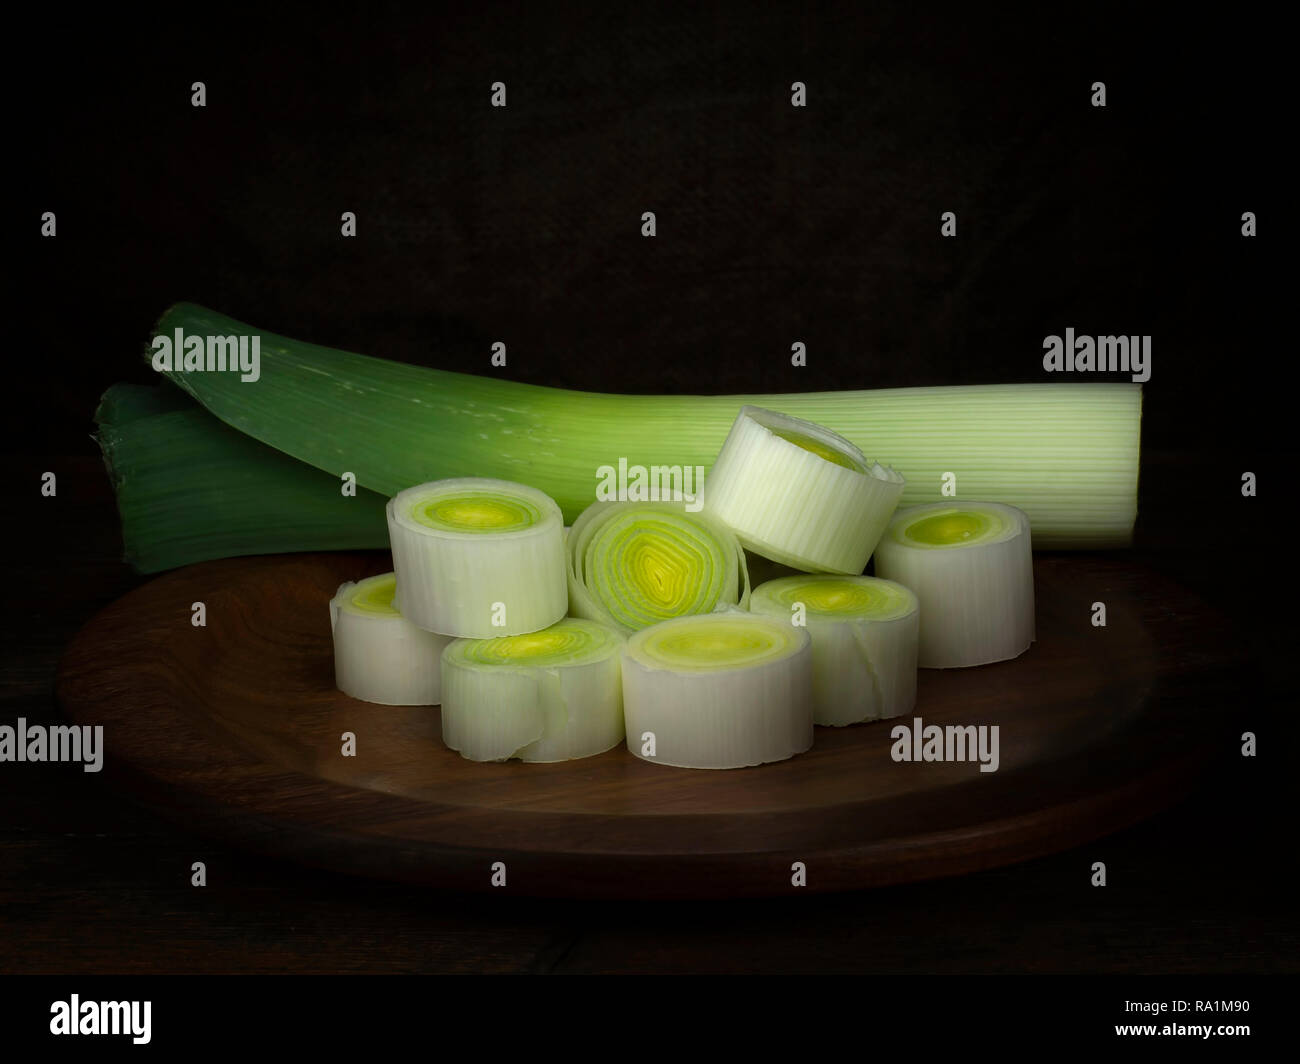 Sliced leek on wooden plate. Still life, chiaroscuro style achieved by light painting. - Stock Image